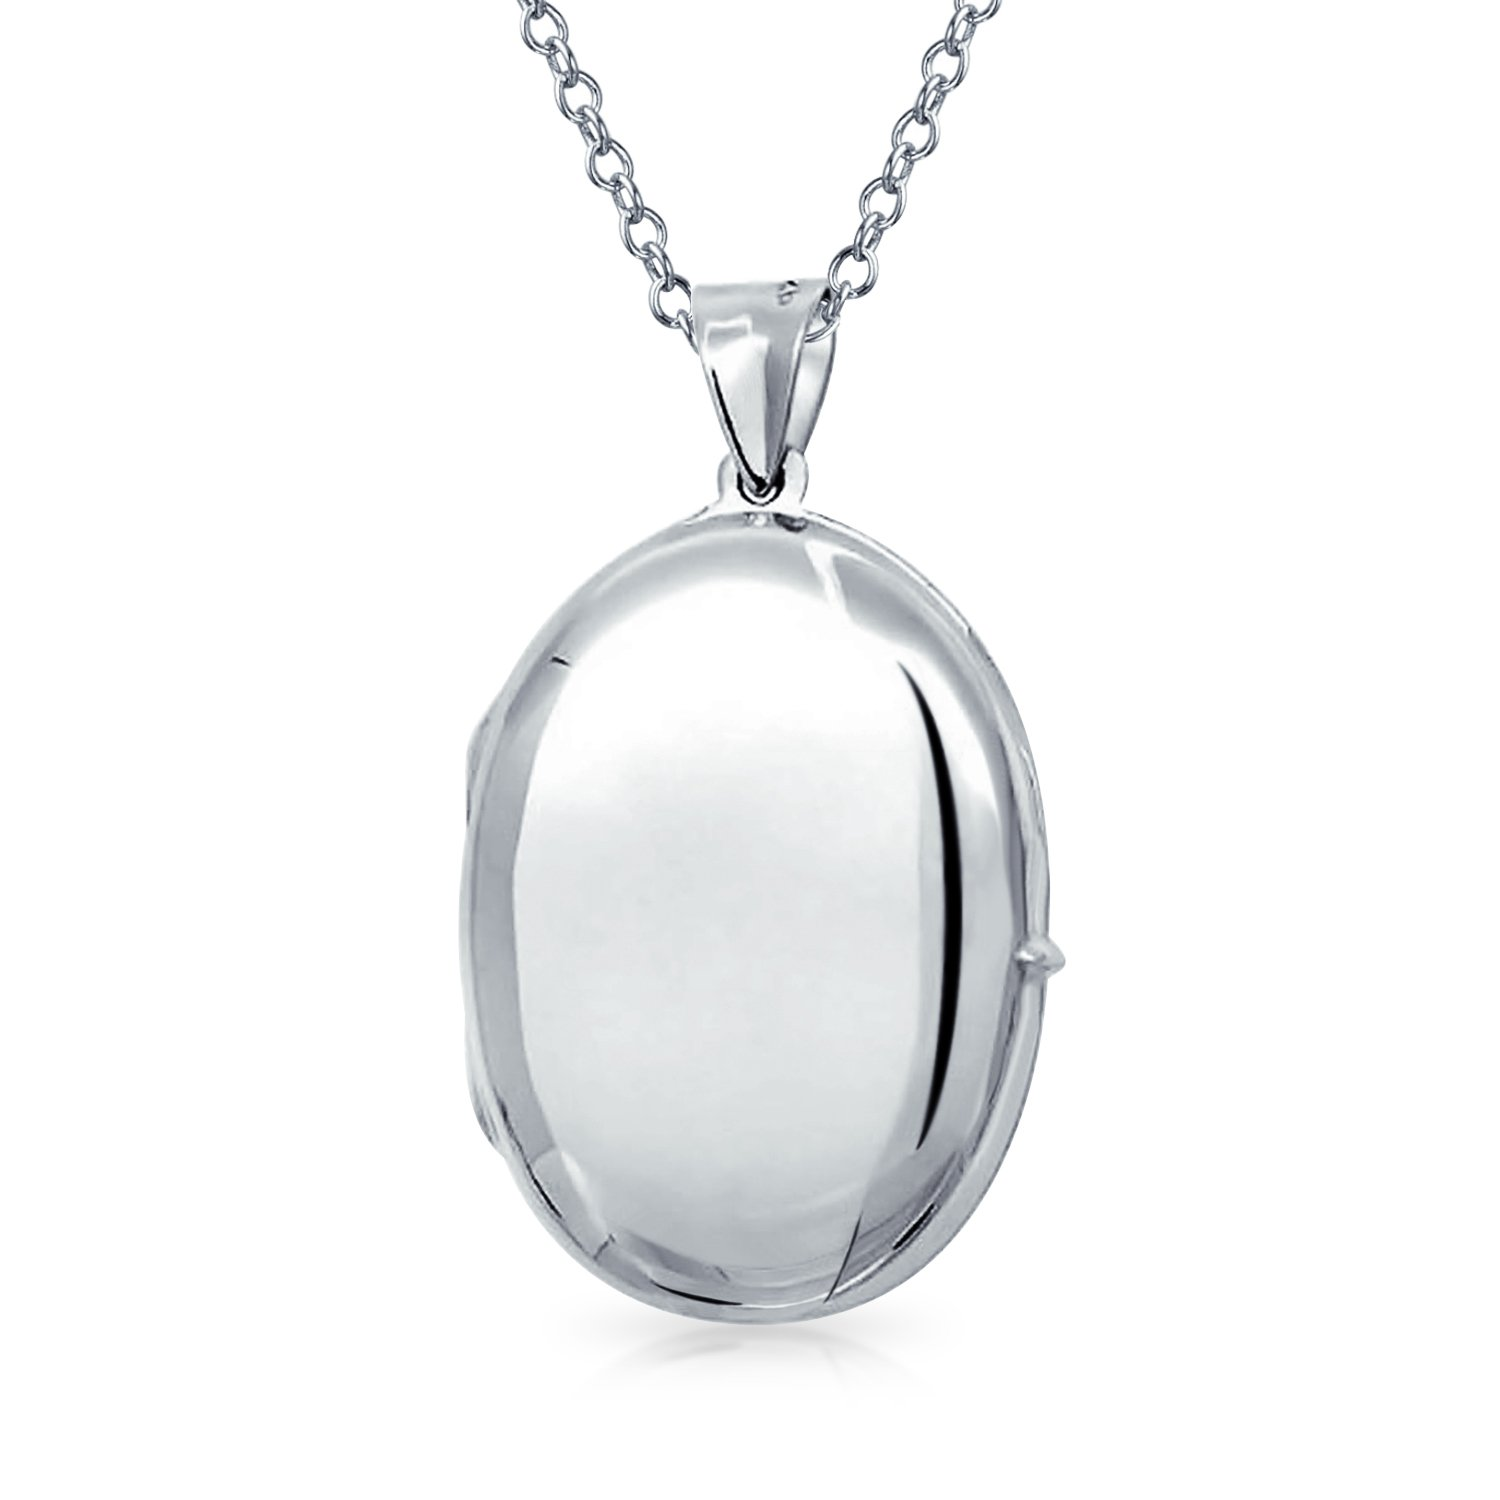 Bling Jewelry Timeless Polished Oval Locket Pendant Sterling SIlver Necklace 18 Inches SSTR-VLC12